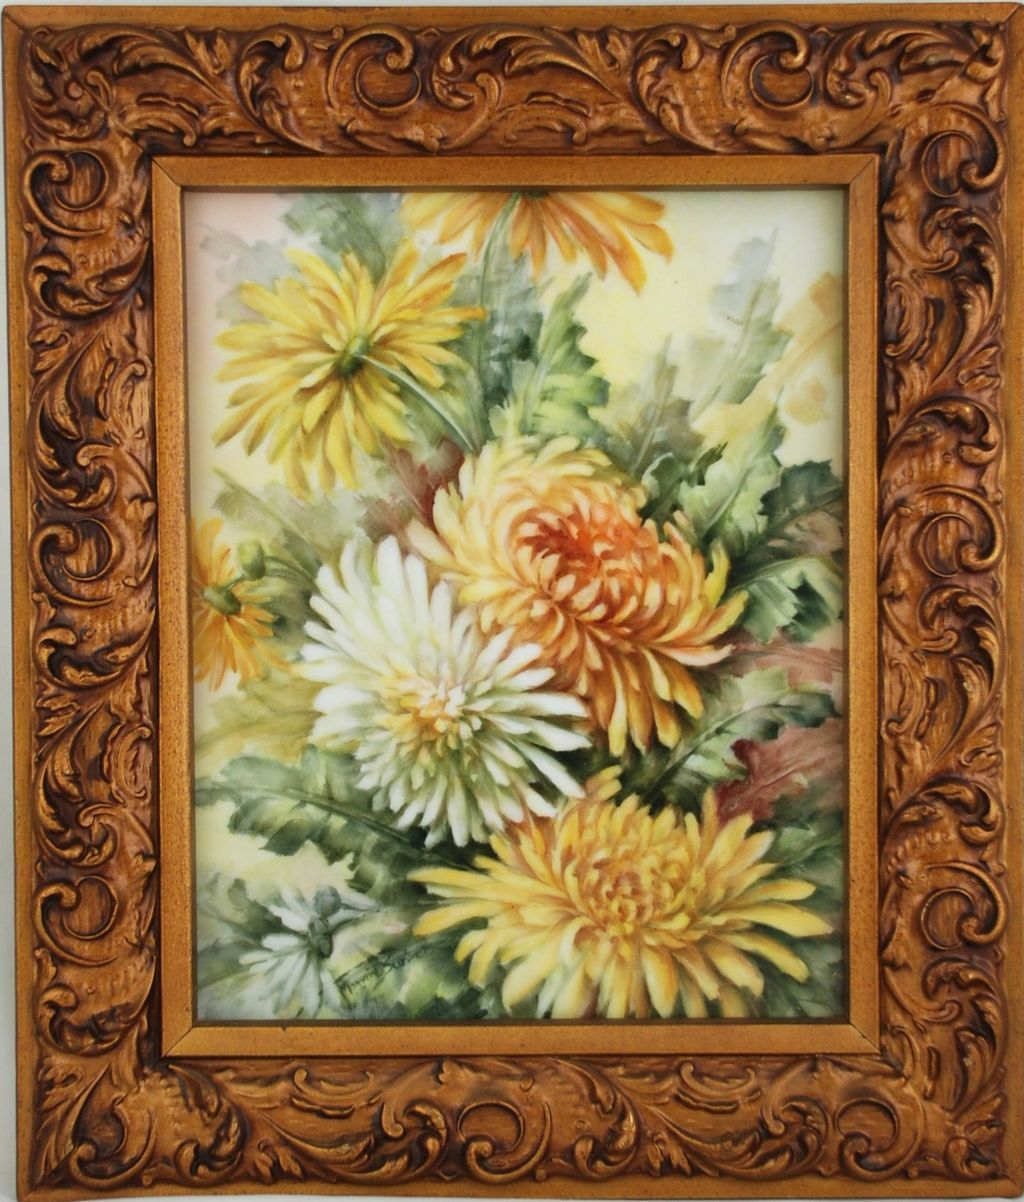 Hand Painted Porcelain Tile Painting of Chrysanthemums by Surber